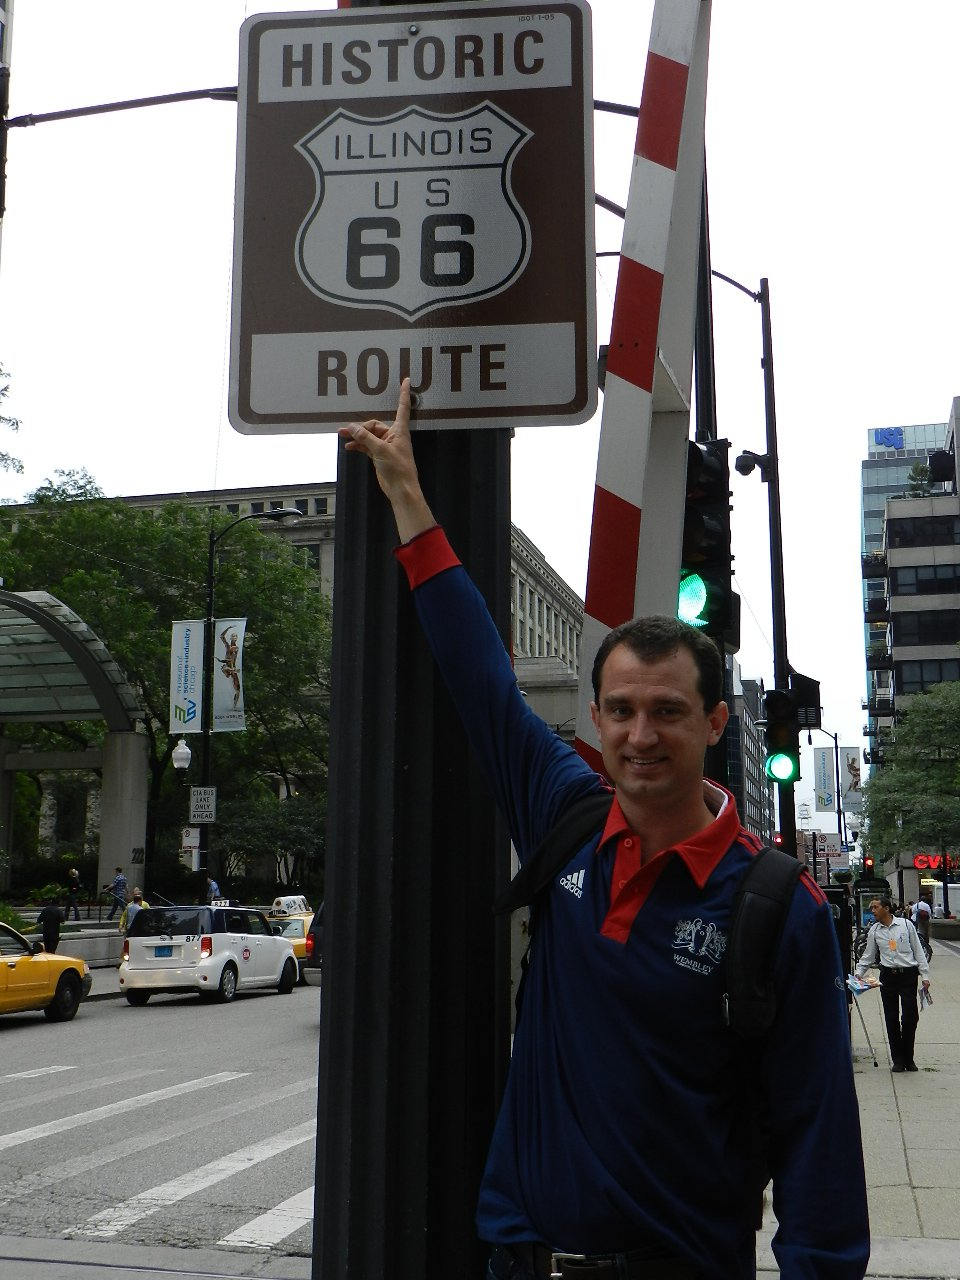 Start of Route 66 in Chicago